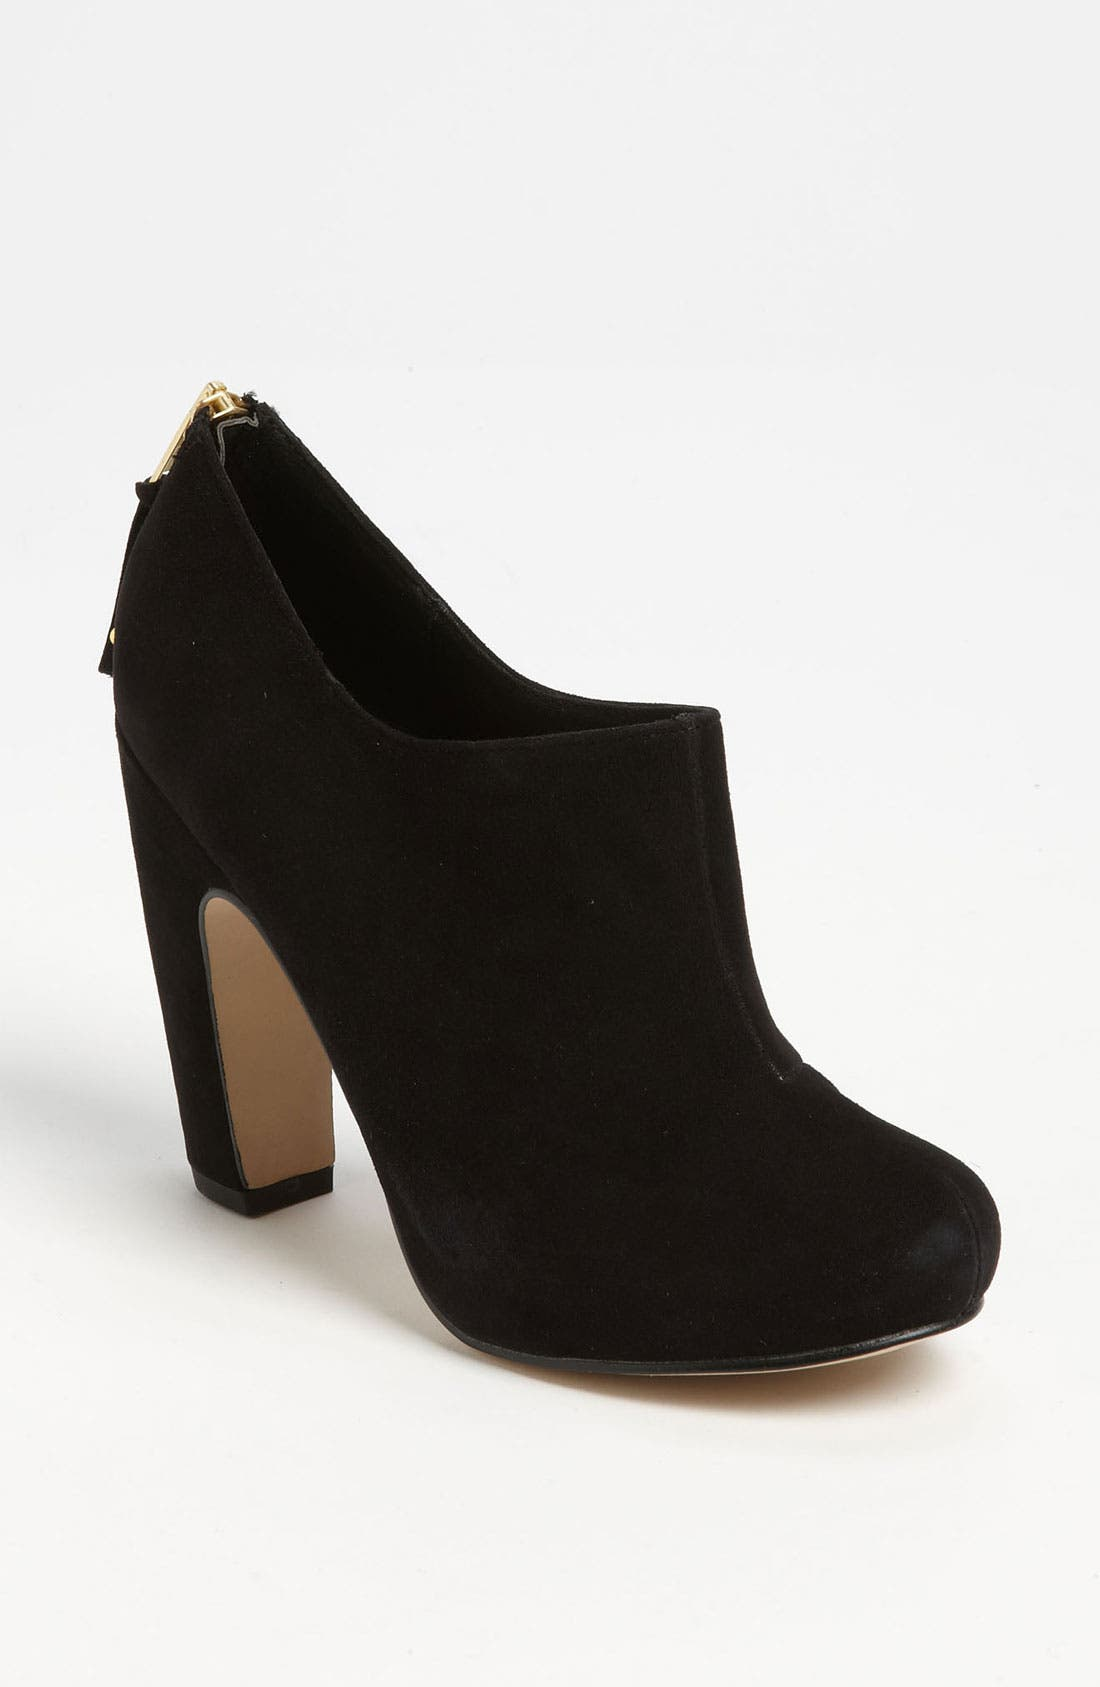 Main Image - Topshop 'Graphic' Arc Heel Ankle Boot